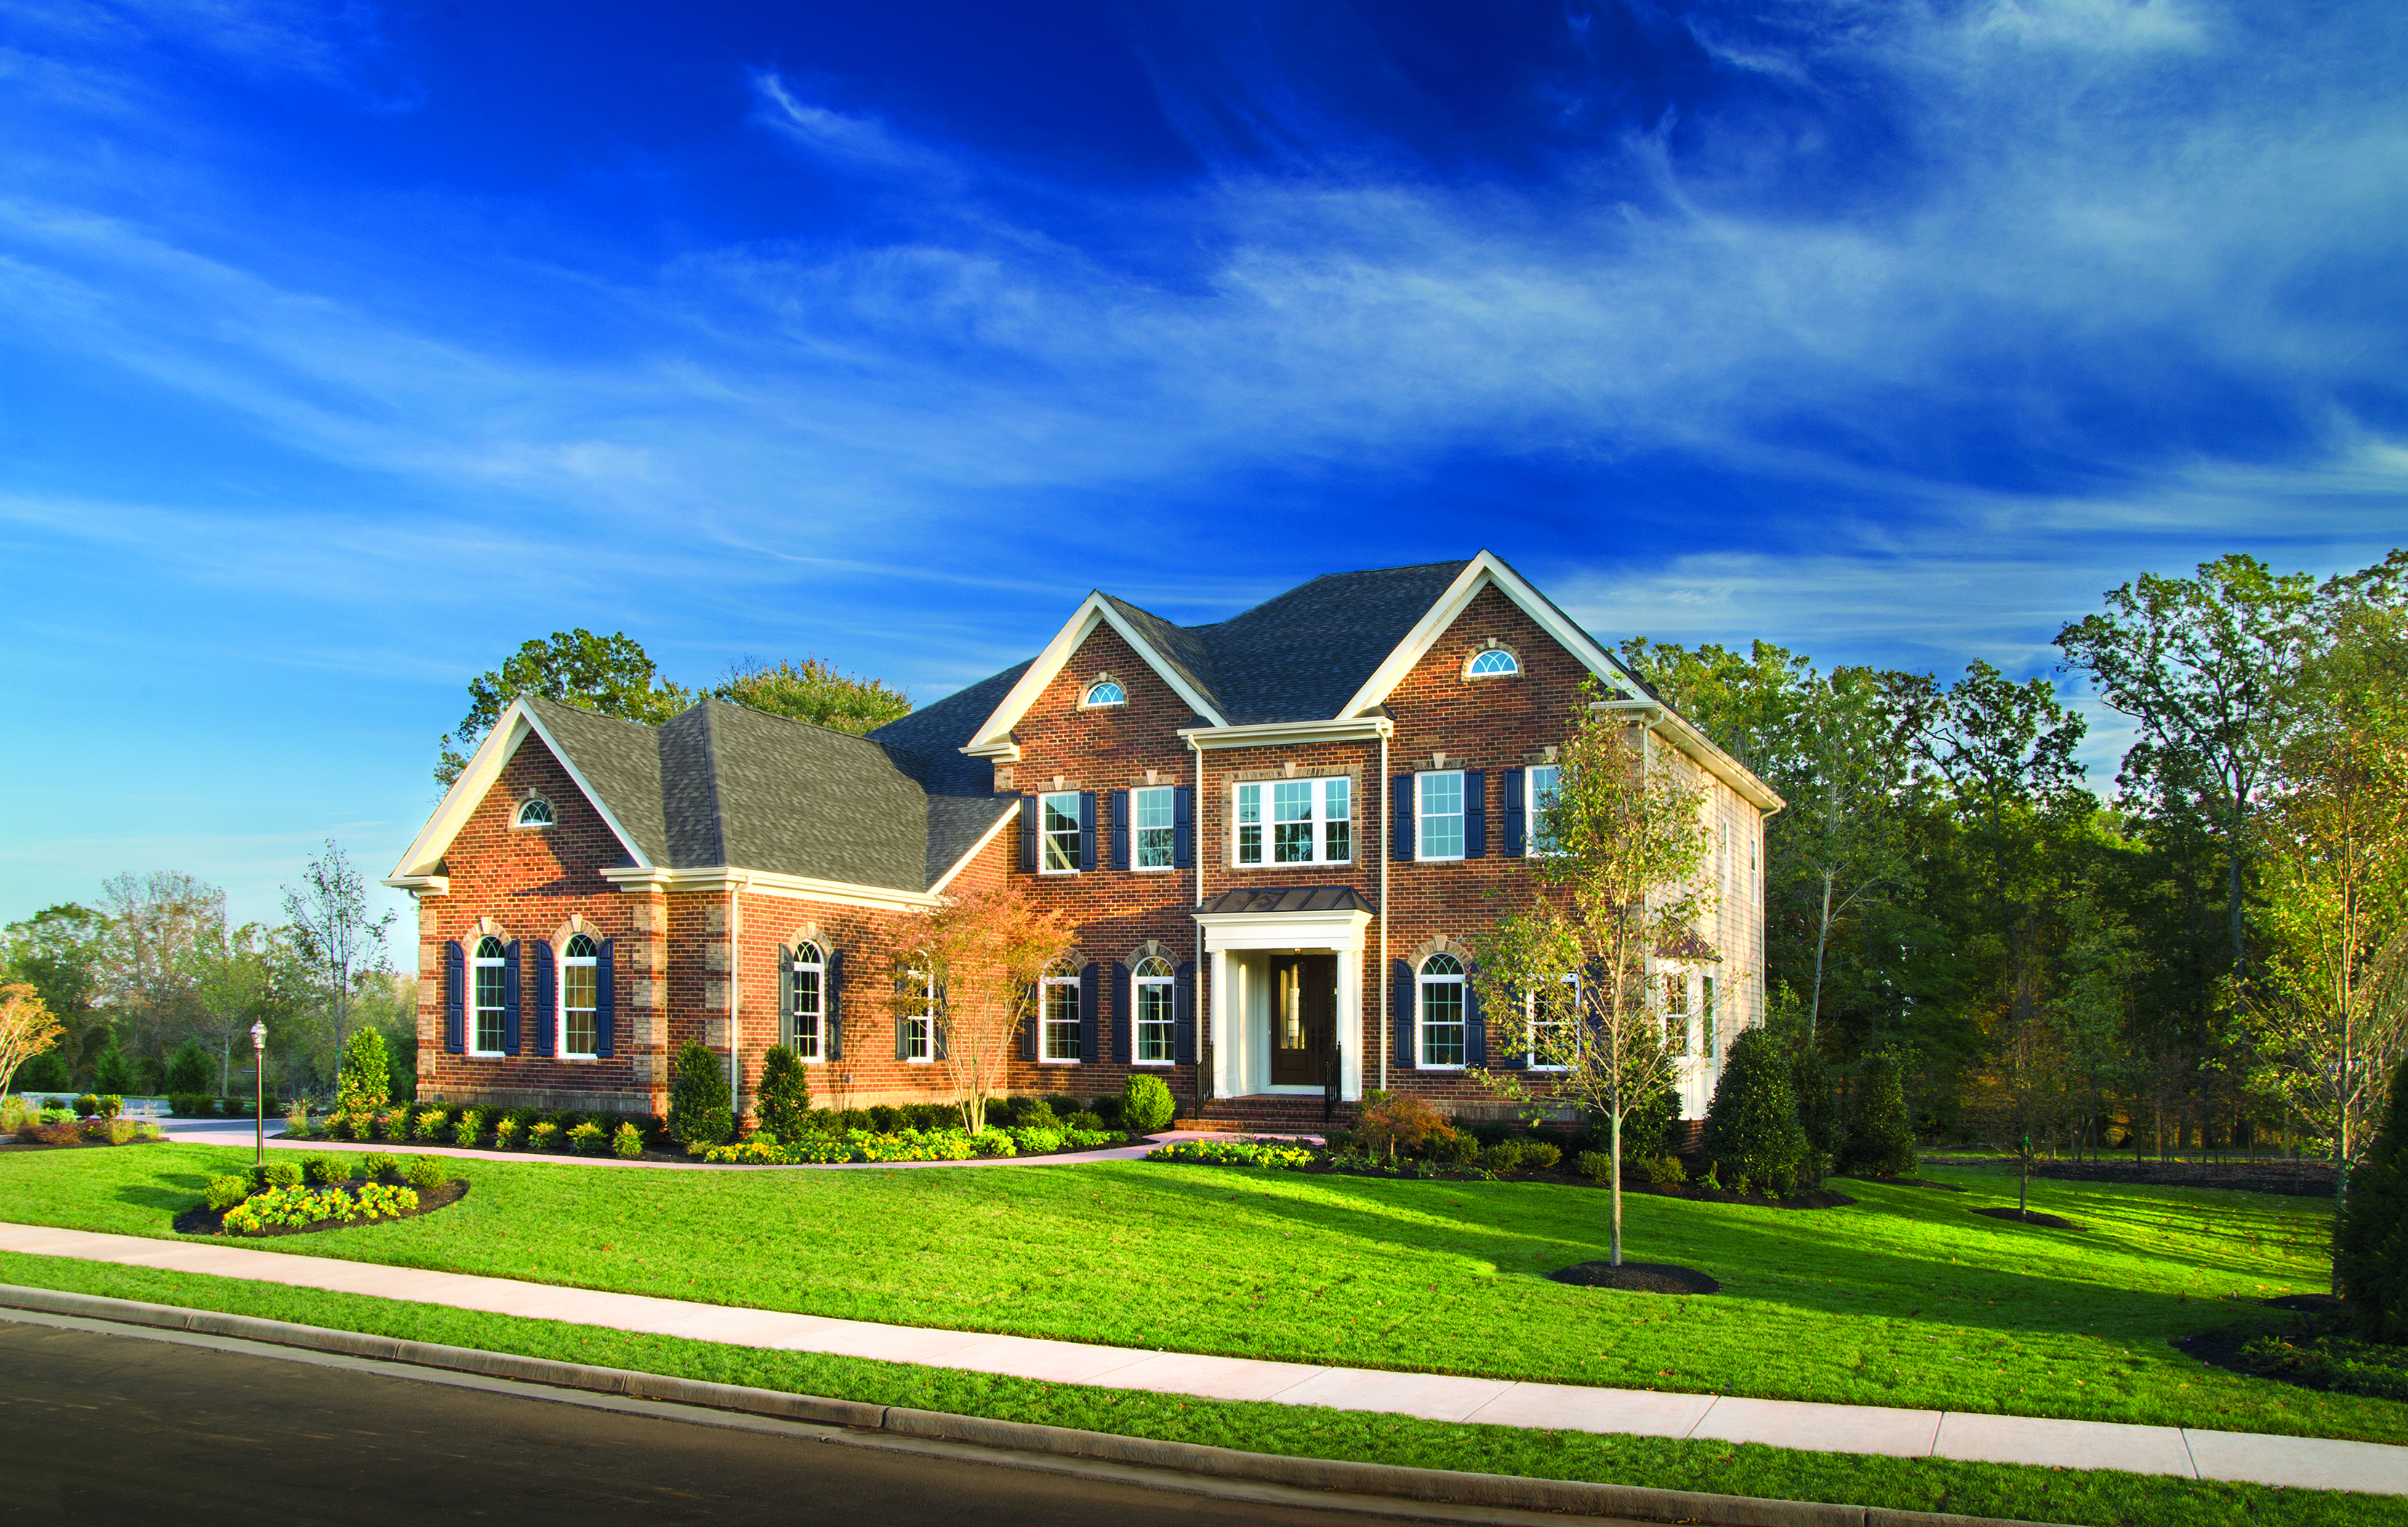 clifton park single parents Search below and find all of the low income housing in clifton park ny we  have listed out all of the low income housing listings in clifton park, ny below.